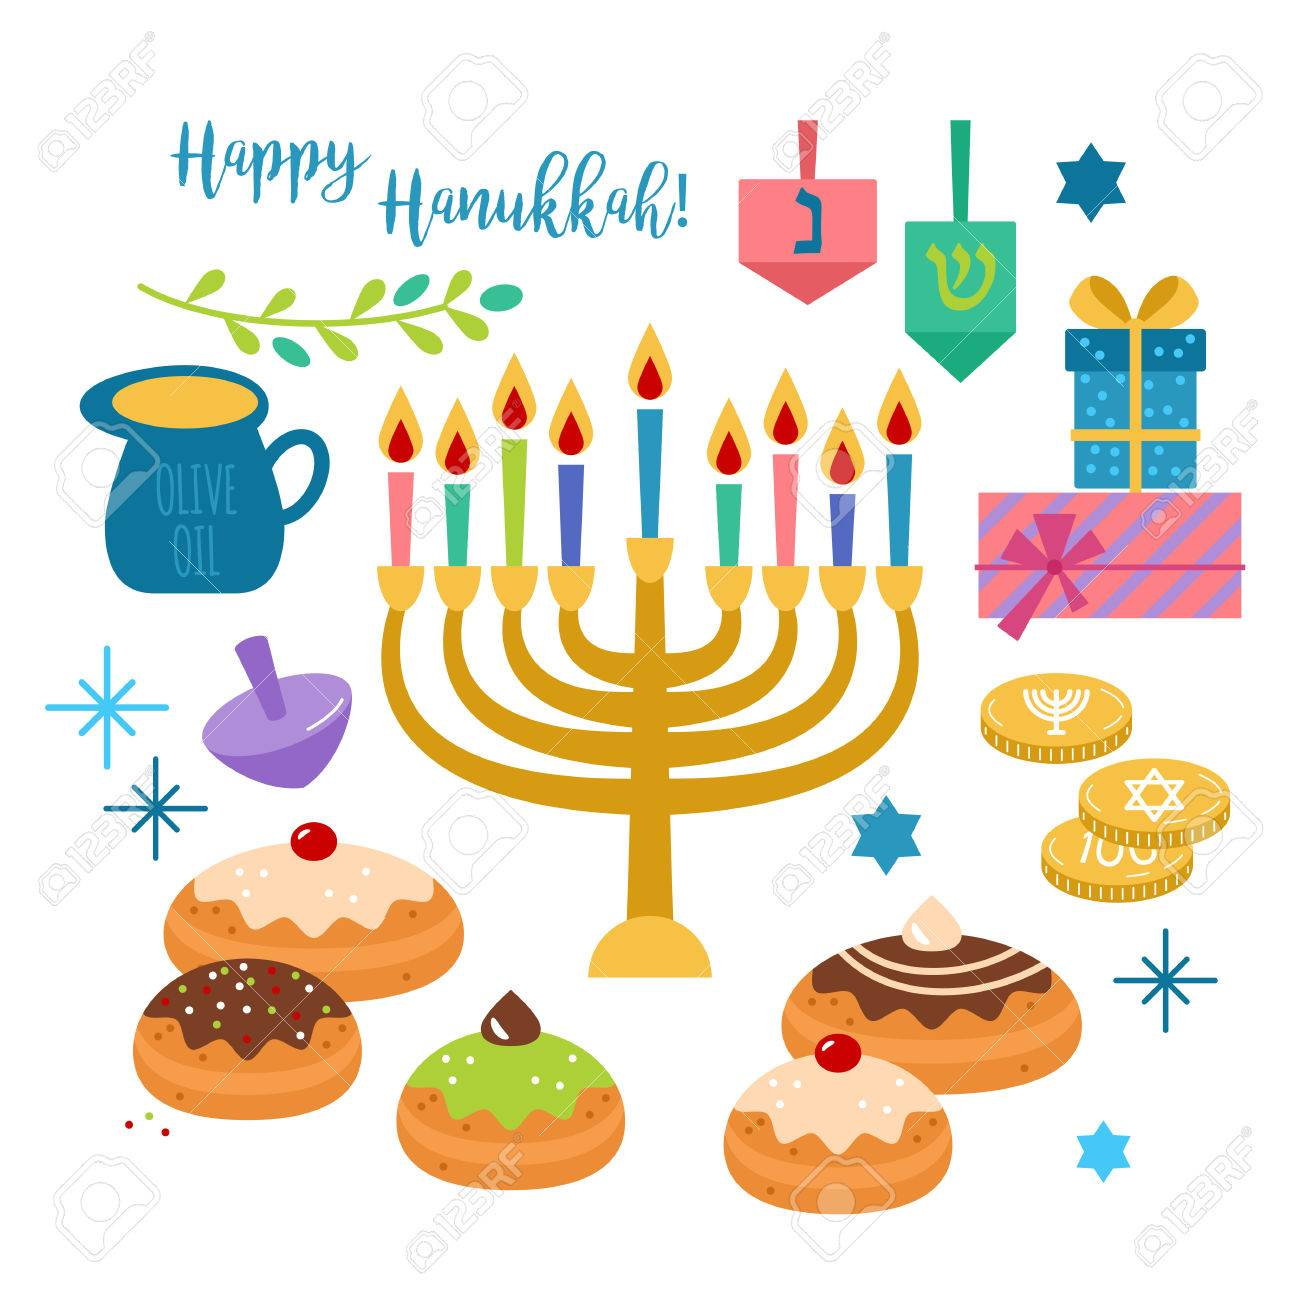 Hanukkah jewish holiday elements for graphic and web design on hanukkah jewish holiday elements for graphic and web design on white background isolated vector illustration kristyandbryce Images